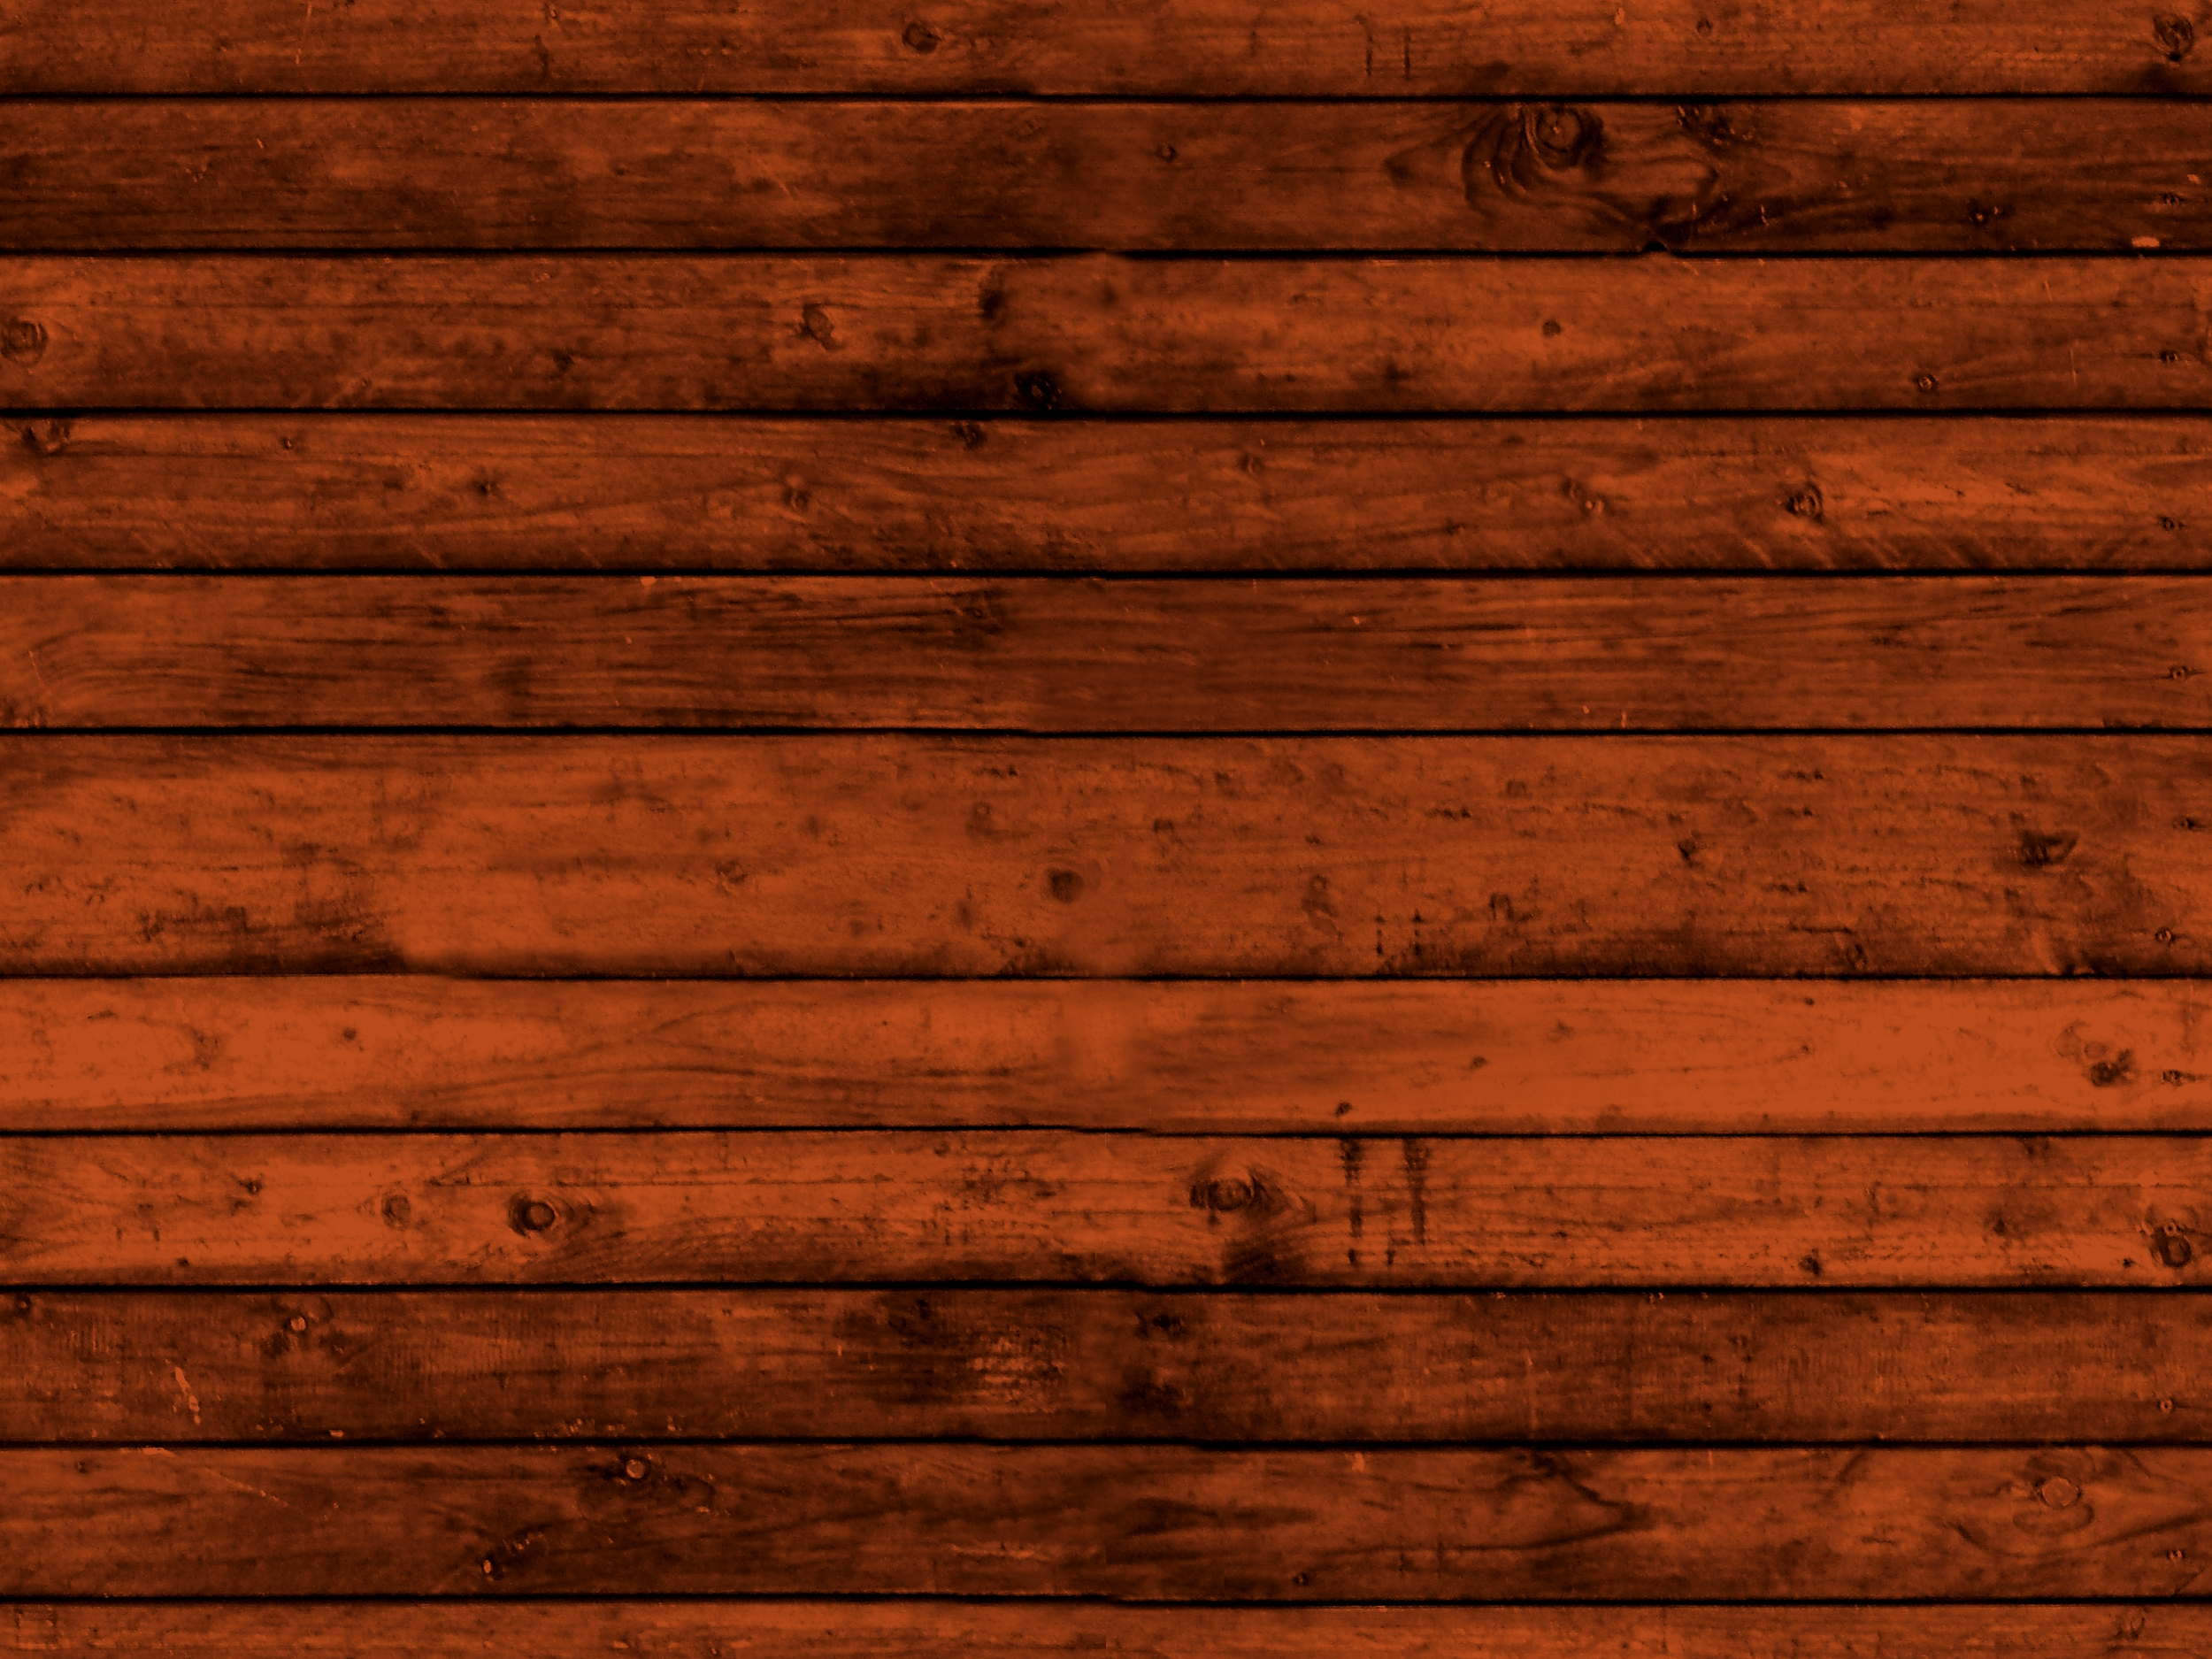 Like a texture nd Wooden Plank [image online] Available at 2500x1875